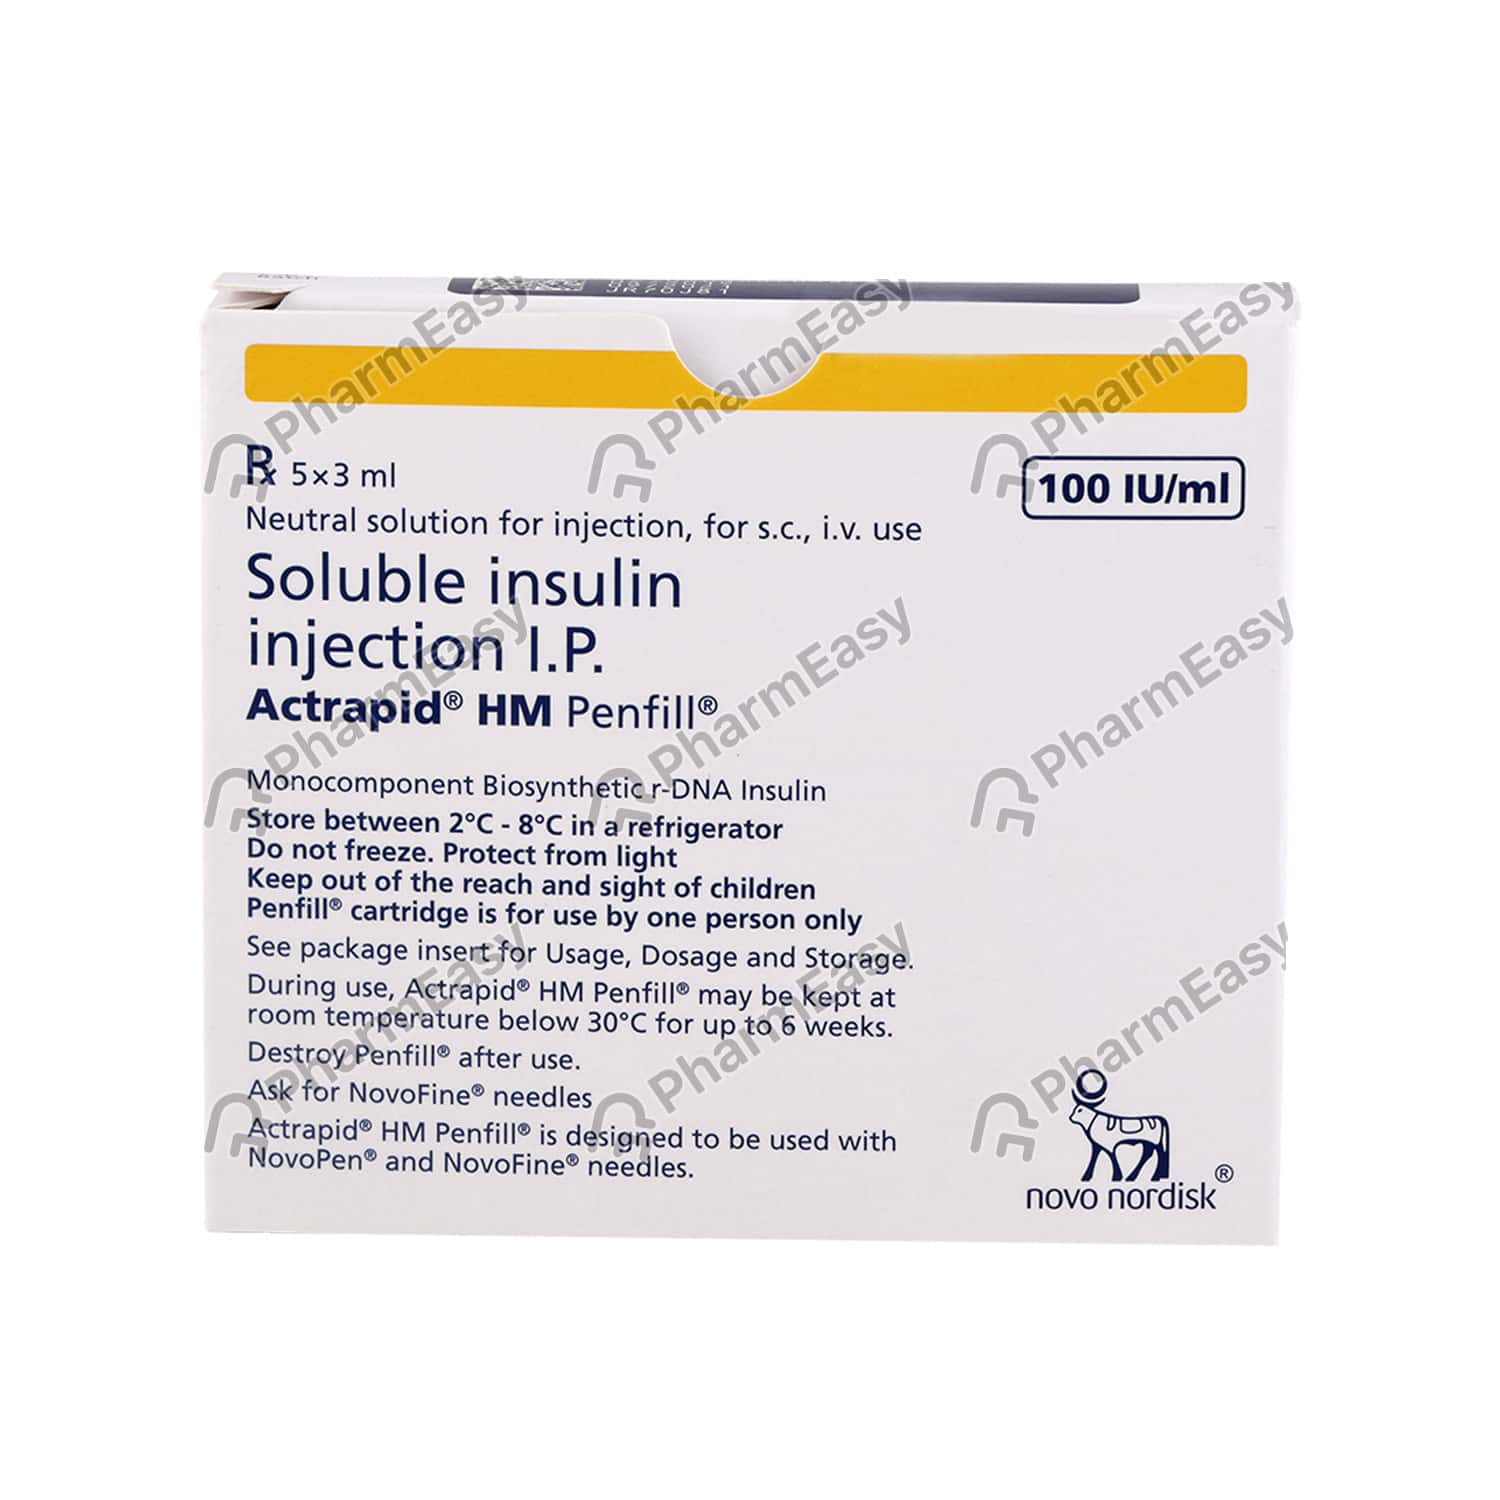 Actrapid Hm Penfill Injection 3ml